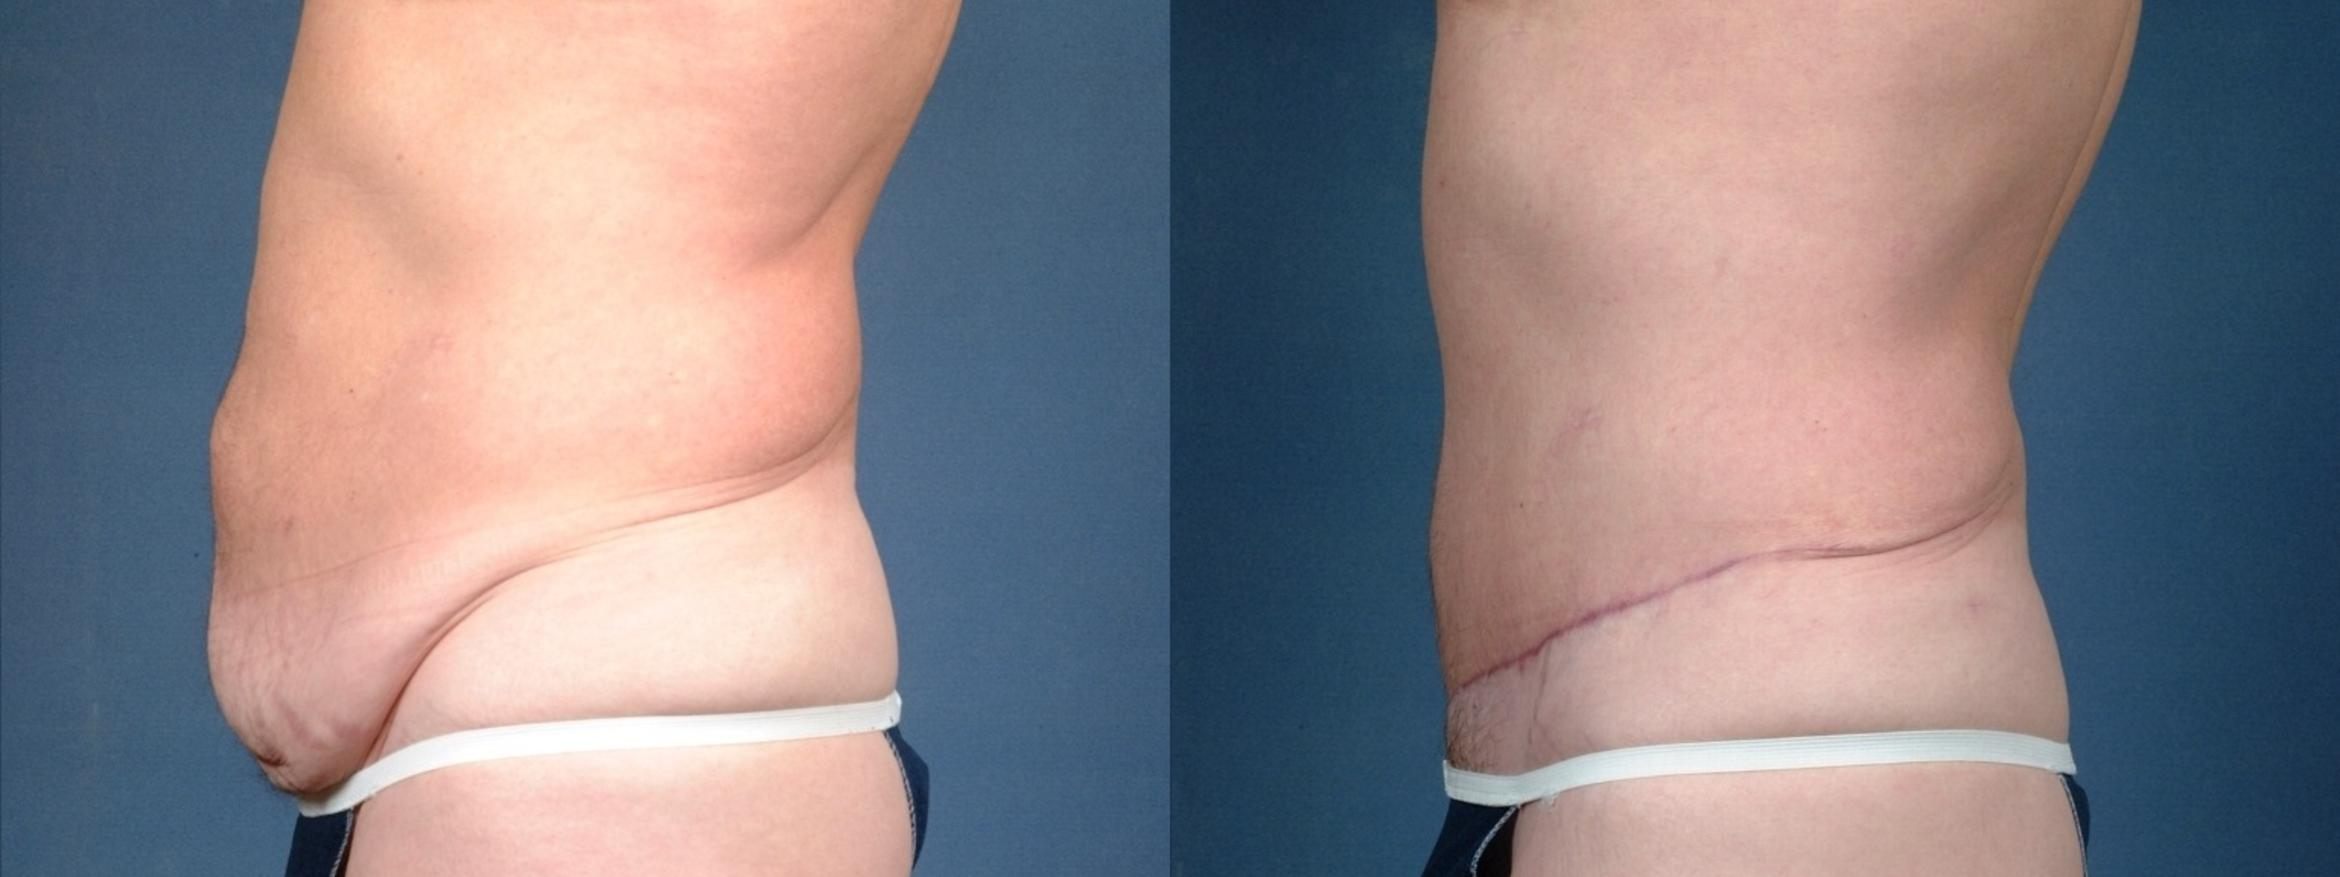 Tummy Tuck Case 721 Before & After Left Side | Louisville & Lexington, KY | CaloAesthetics® Plastic Surgery Center